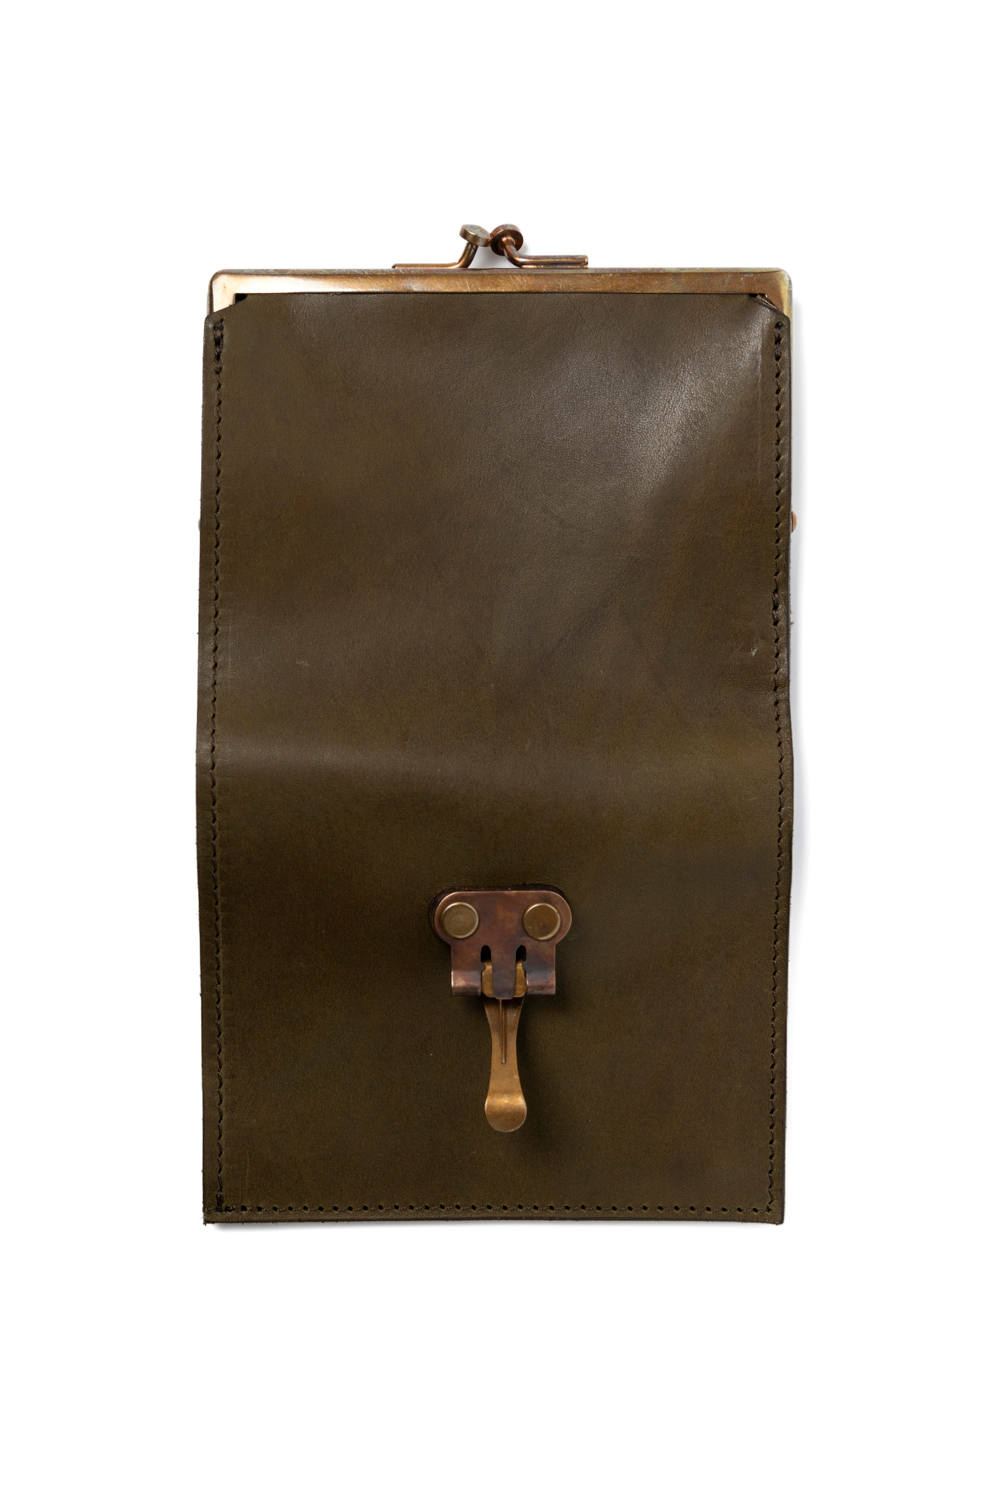 【19AW】レザーボヤージュパースウォレット [オリーブ] / LEATHER VOYAGE PURSE WALLET [VERDE]